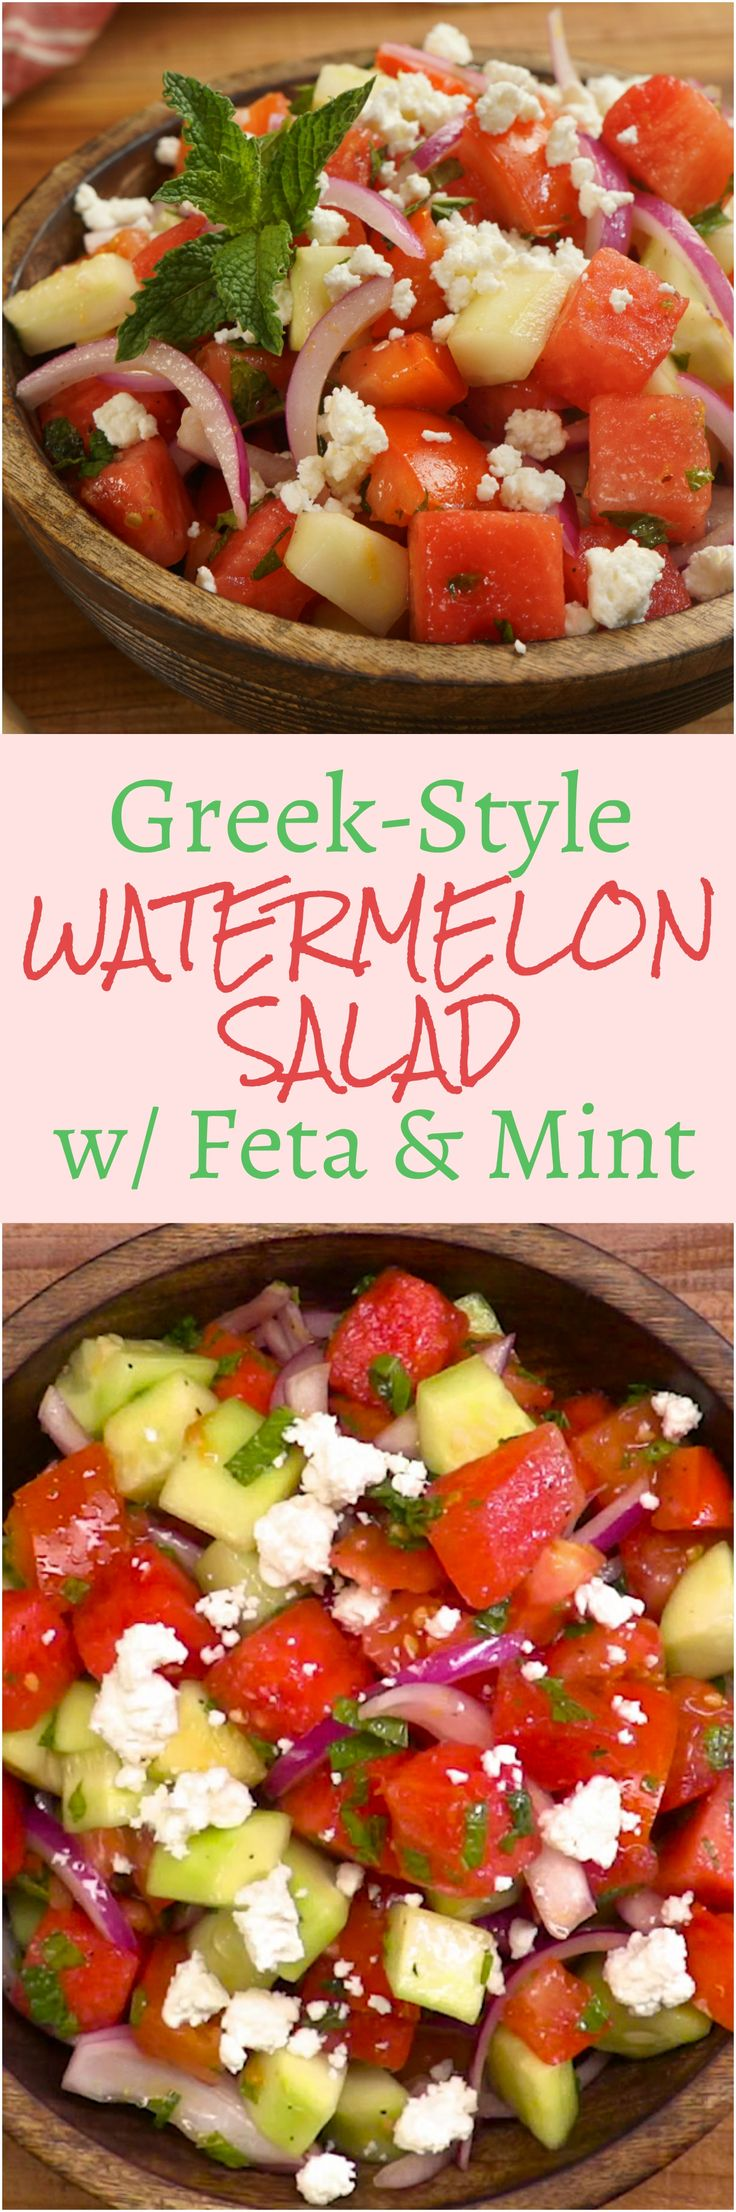 Healthy, refreshing, and unexpected Mediterranean summer salad with mellow watermelon, cucumber, tomatoes, zingy red onion, feta cheese, and cool mint.